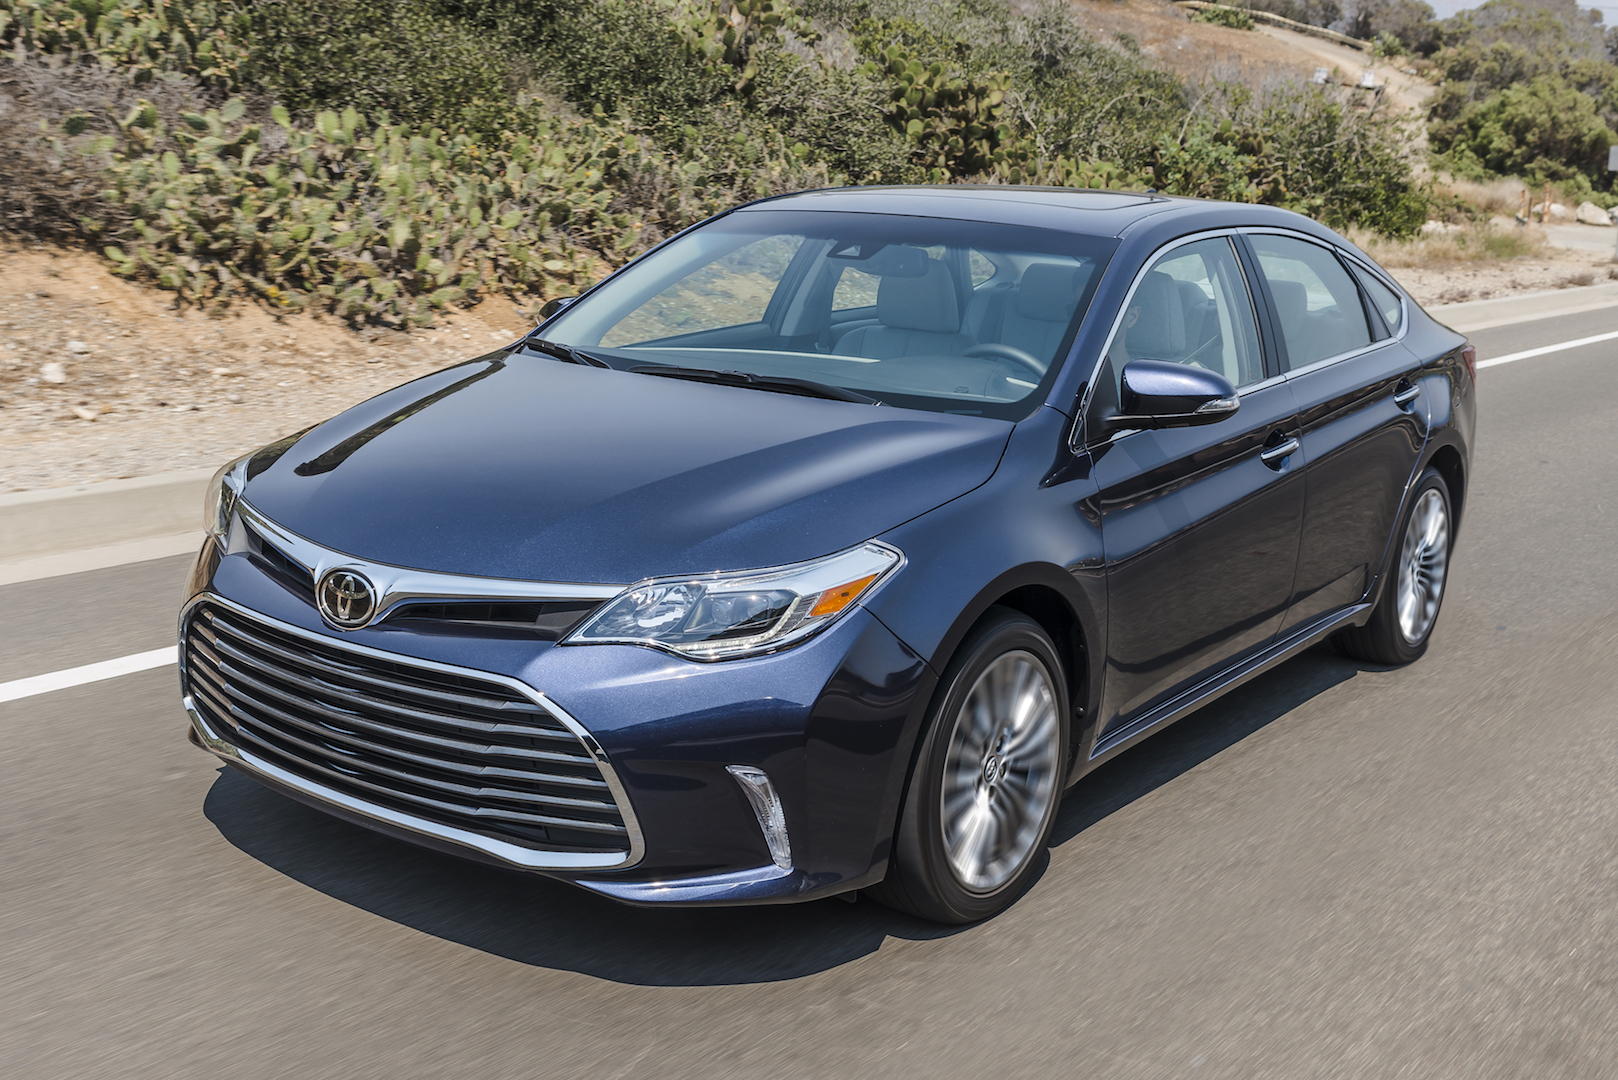 2017 toyota avalon review ratings specs prices and photos the car connection. Black Bedroom Furniture Sets. Home Design Ideas